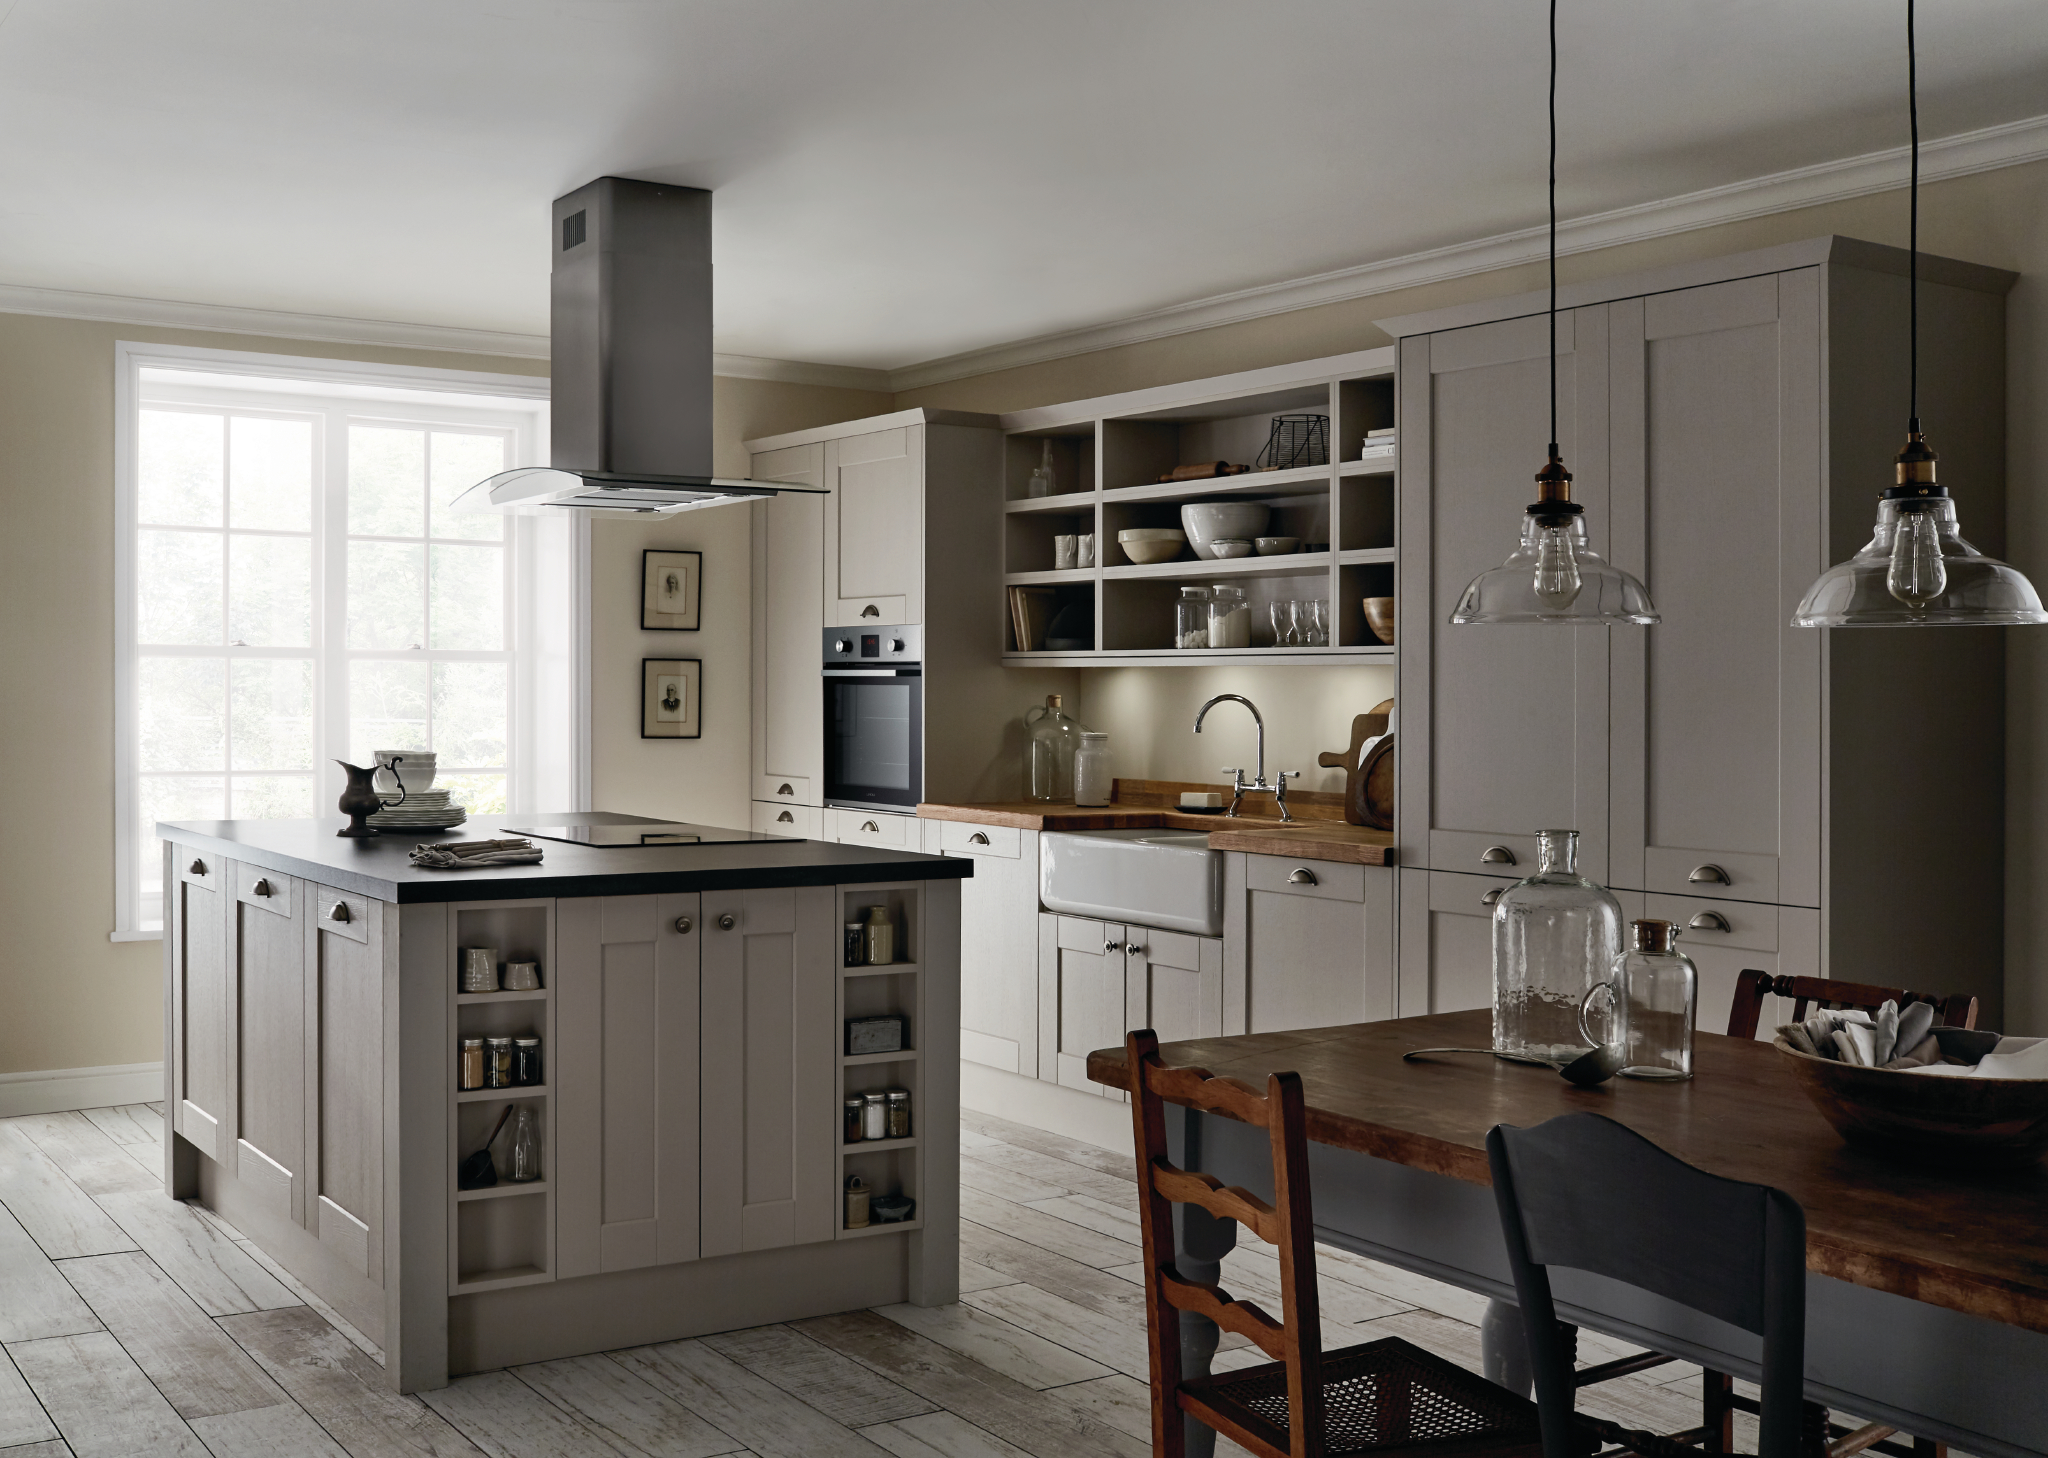 Howdens Fairford kitchen in Cashmere, featuring pewter effect cabinet handles, blackstone and solid oak block worktop and upstand, Lamona single oven, ceramic hob and curved glass island extractor, Lamona double Belfast sink and Lamona Victorian Bridge tap. All available via Howdens.